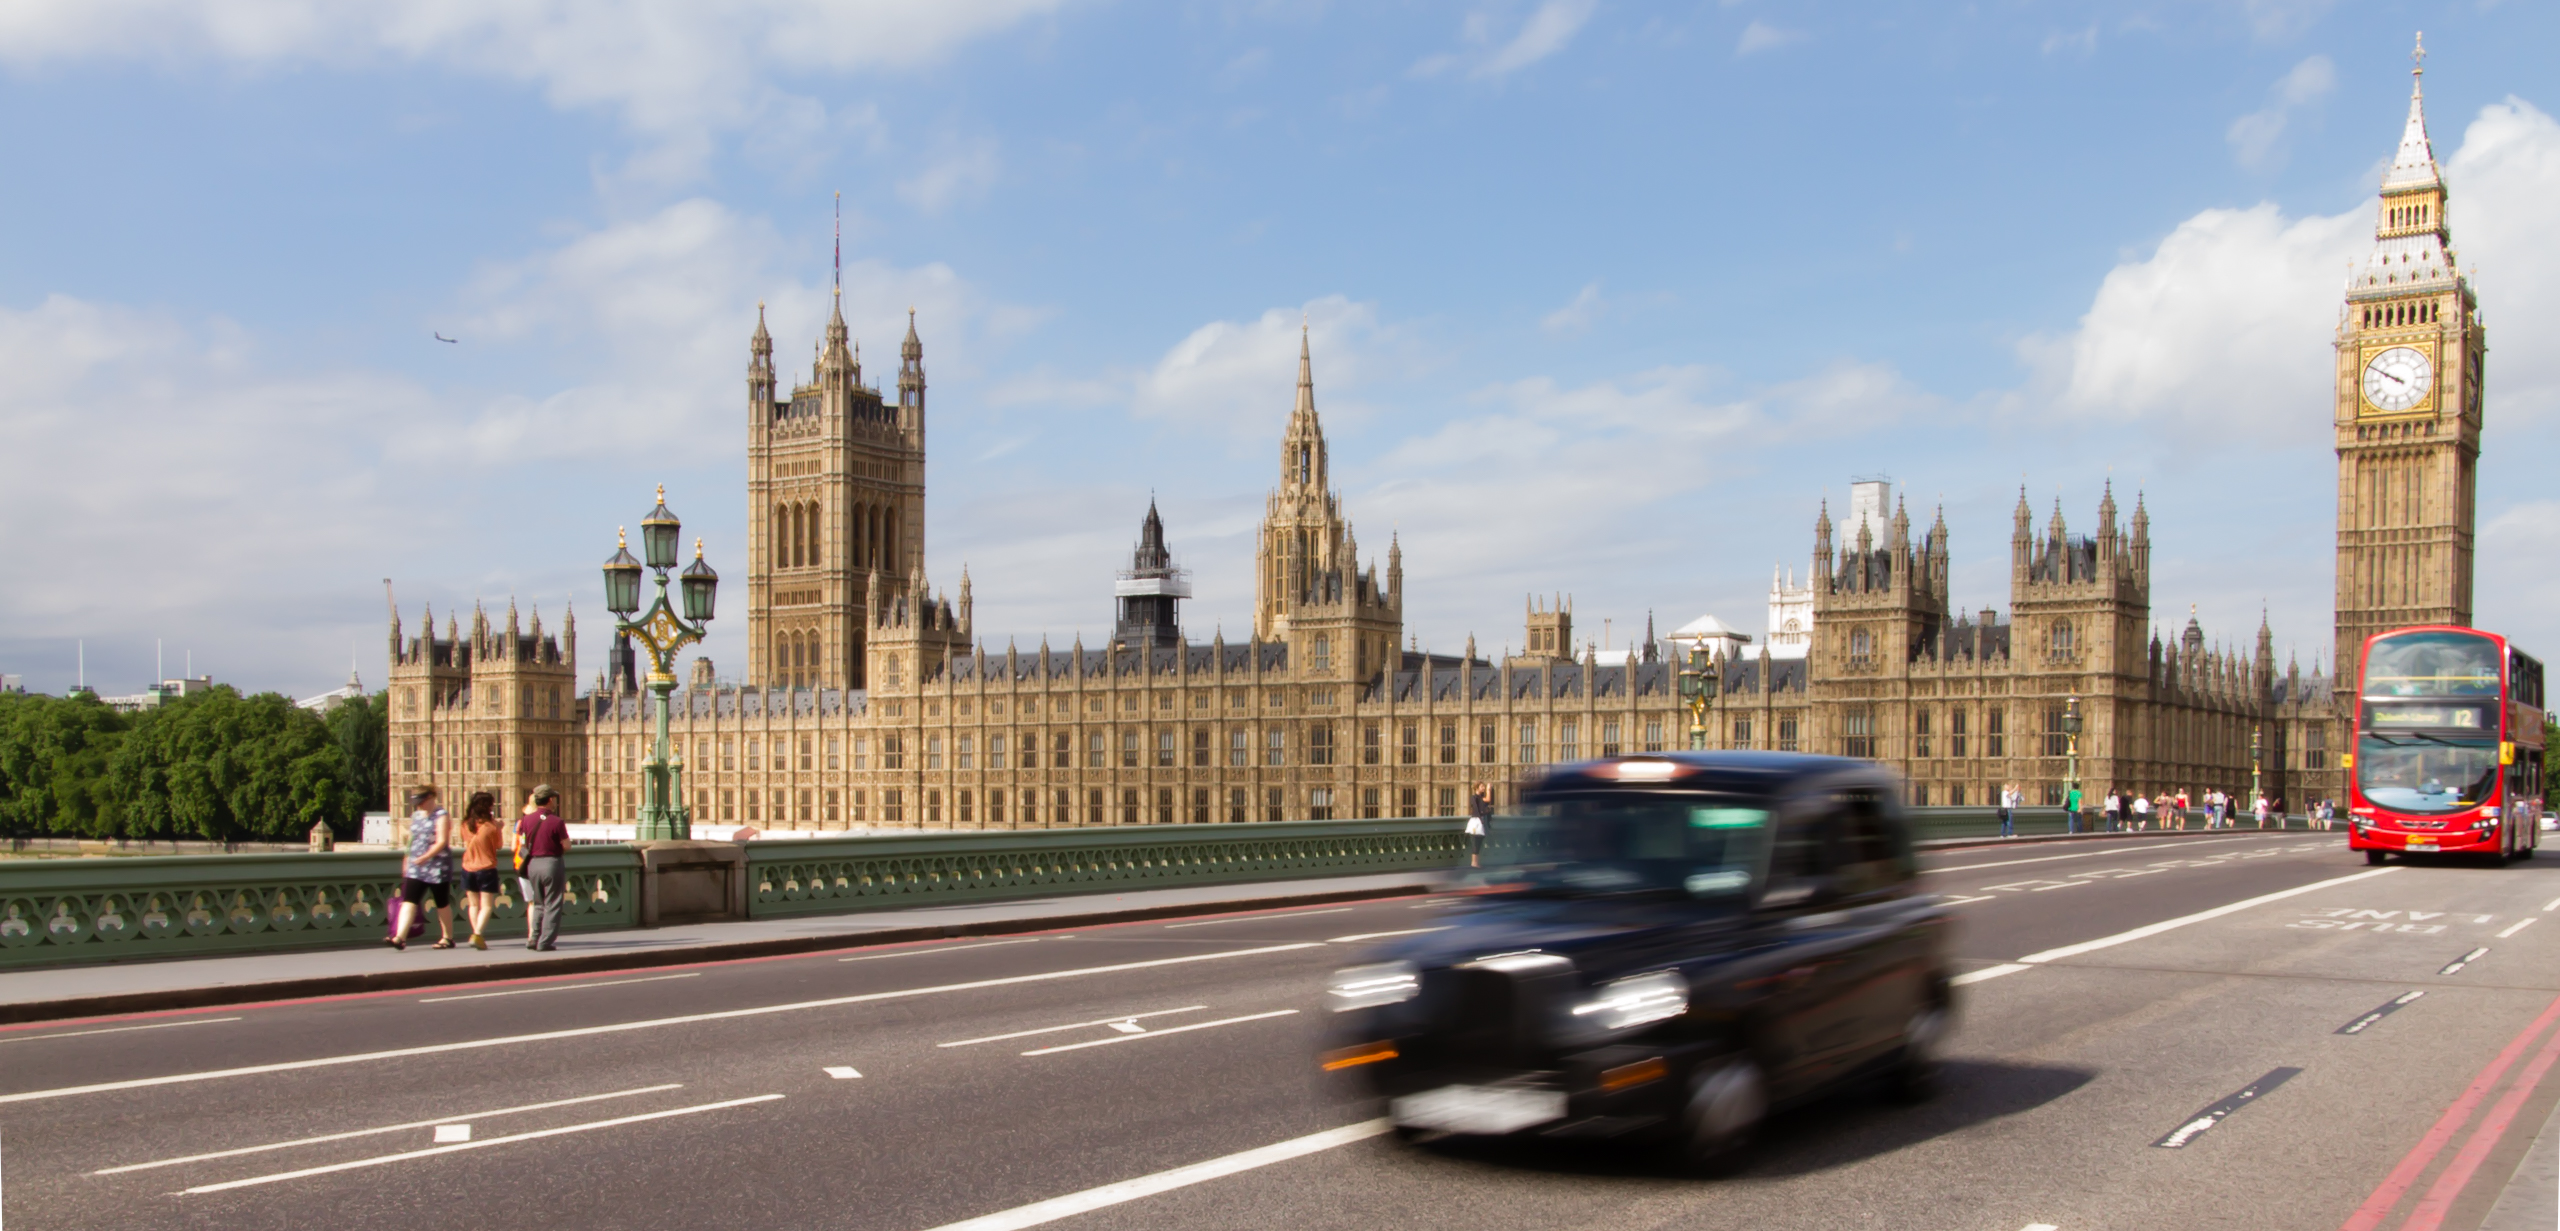 Westminster bridge with black cab and red bus